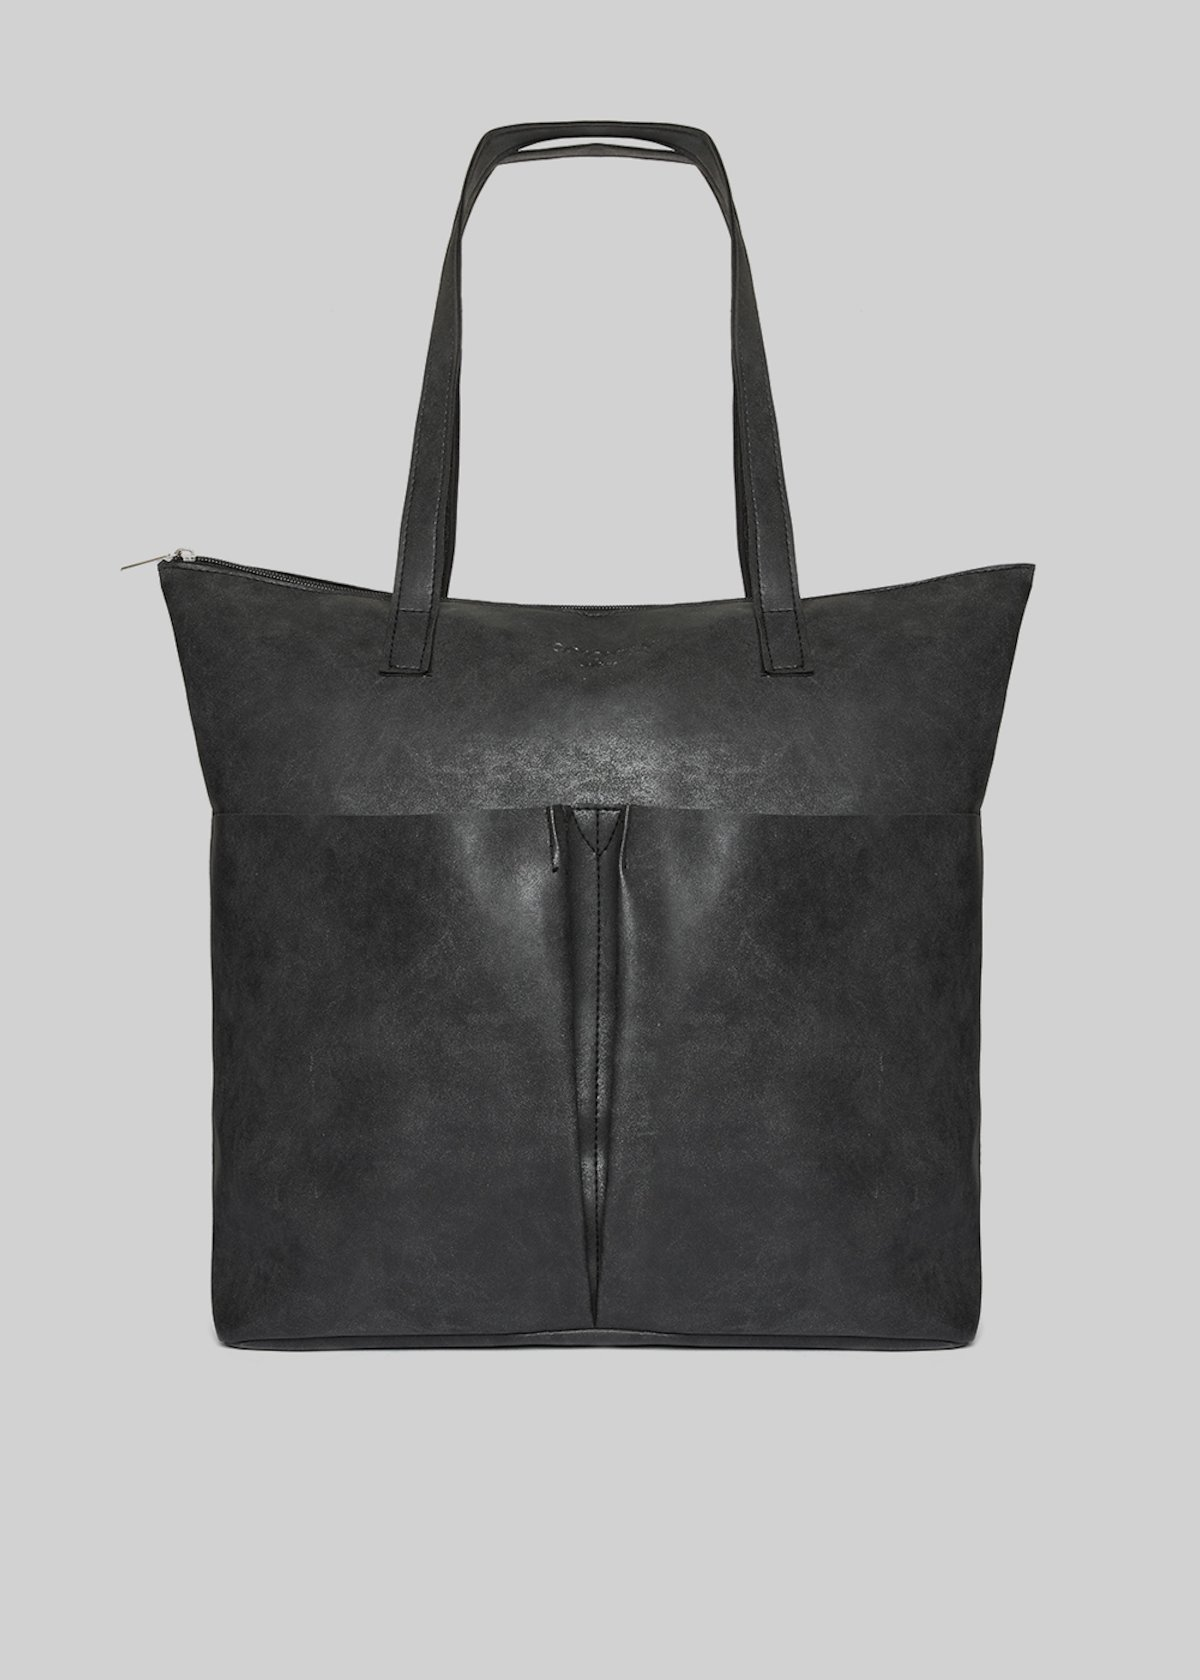 Baly faux leather shopping bag with 2 pockets on the front - Black